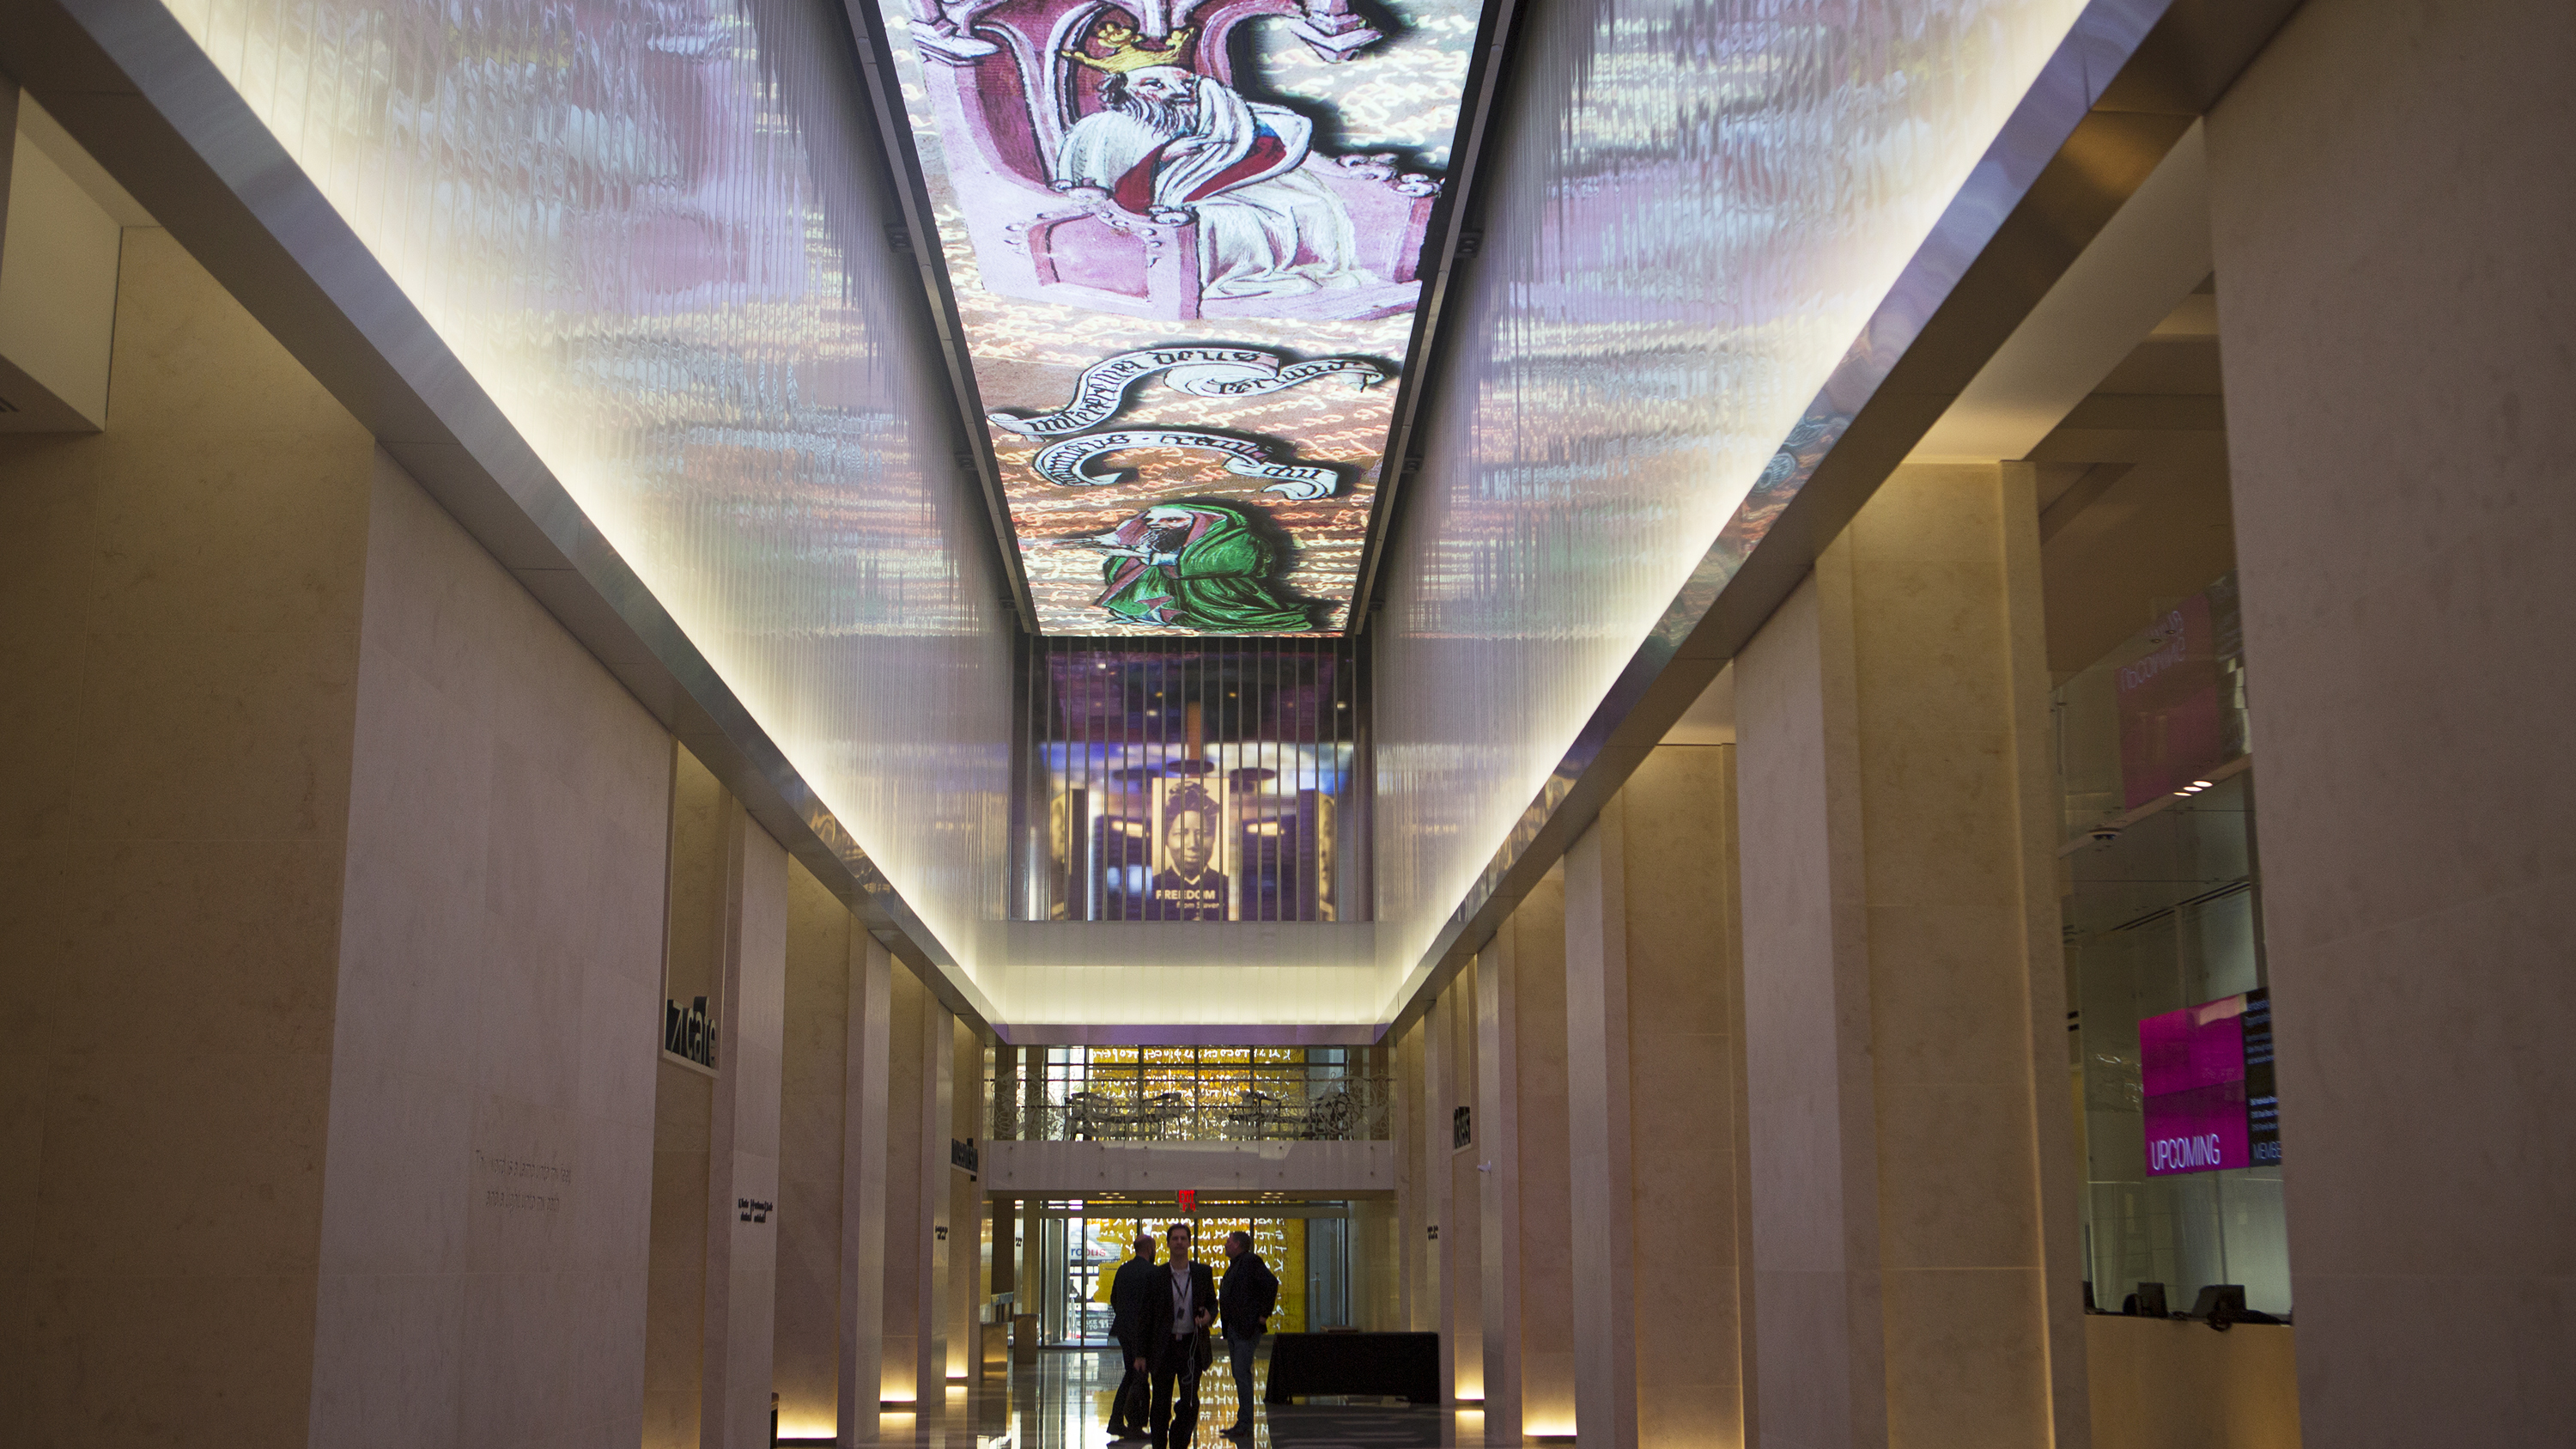 The lobby features a 140-foot digital mosaic that rotates through different images.